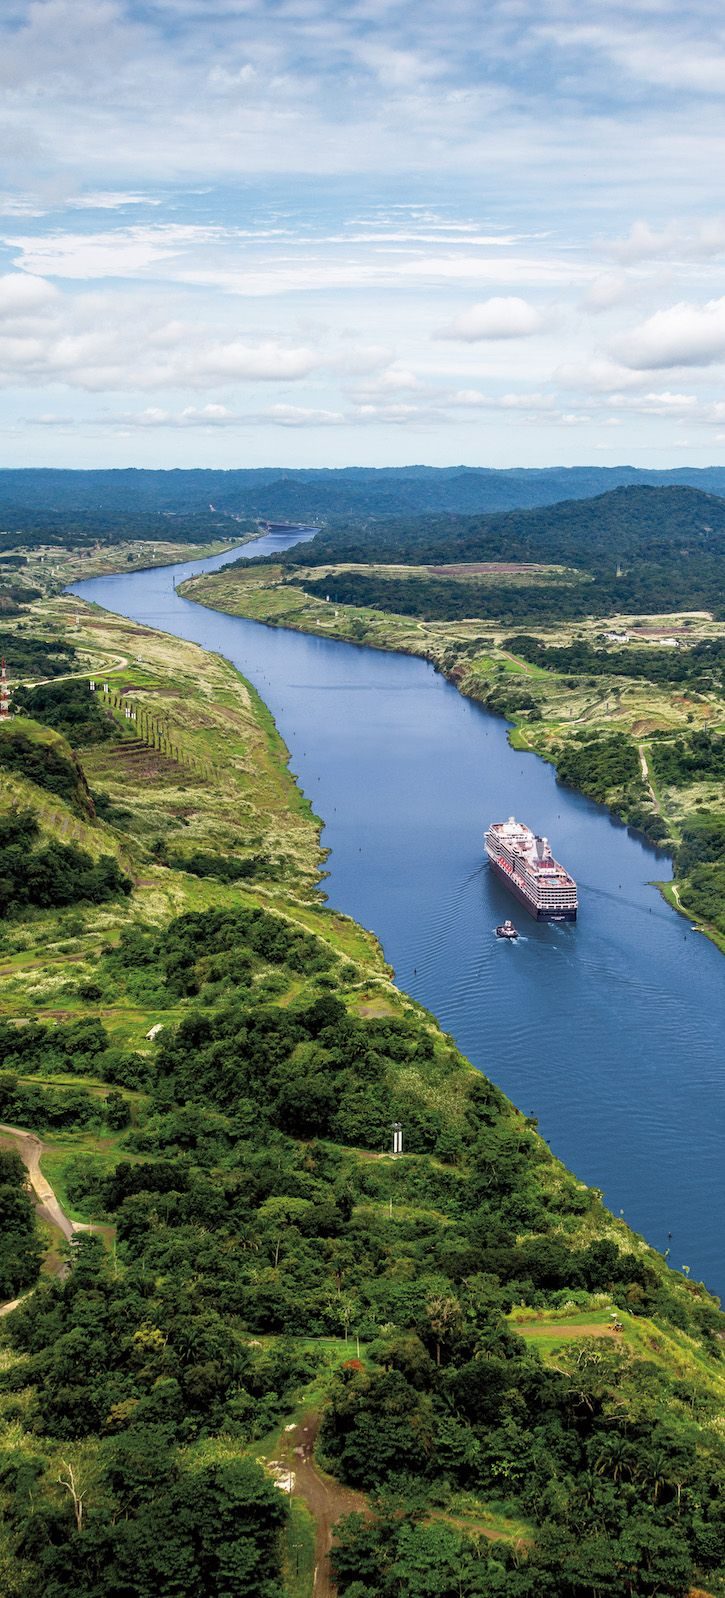 Cruise through history on the Panama Canal.